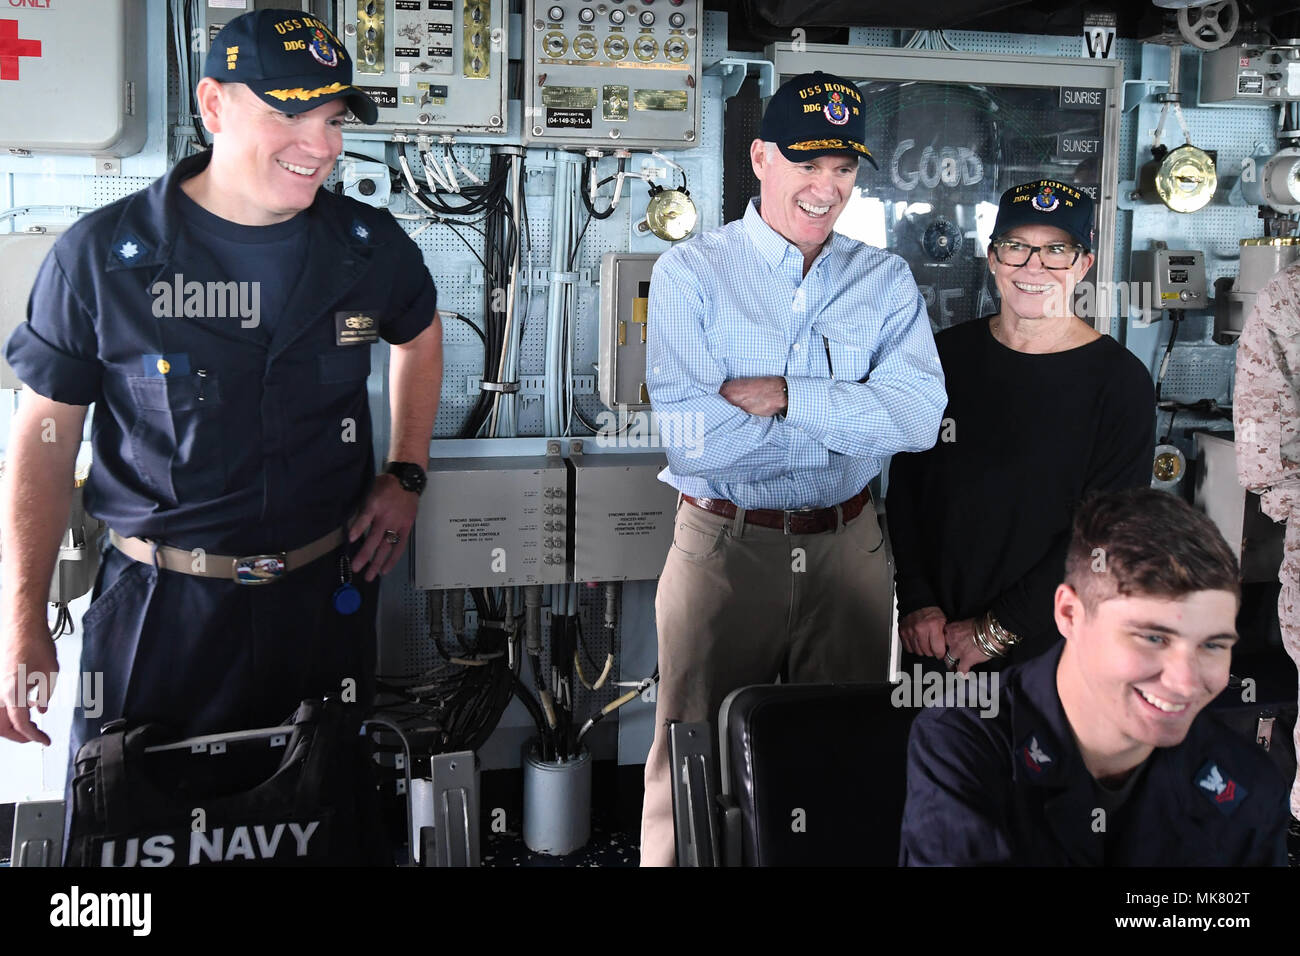 ARABIAN GULF (Nov. 23, 2017) From left, Cmdr. Jeffrey Tamulevich, commanding officer of the Arleigh Burke-class guided-missile destroyer USS Hopper (DDG 70), Secretary of the Navy Richard V. Spencer (center), and his wife, Sarah Pauline Spencer, visit with watchstanders in the ship's bridge on Thanksgiving Day. Hopper is deployed to the U.S. 5th Fleet area of operations in support of maritime security operations to reassure allies and partners and preserve the freedom of navigation and the free flow of commerce in the region. (U.S. Navy photo by Mass Communication Specialist 2nd Class Kristina - Stock Image